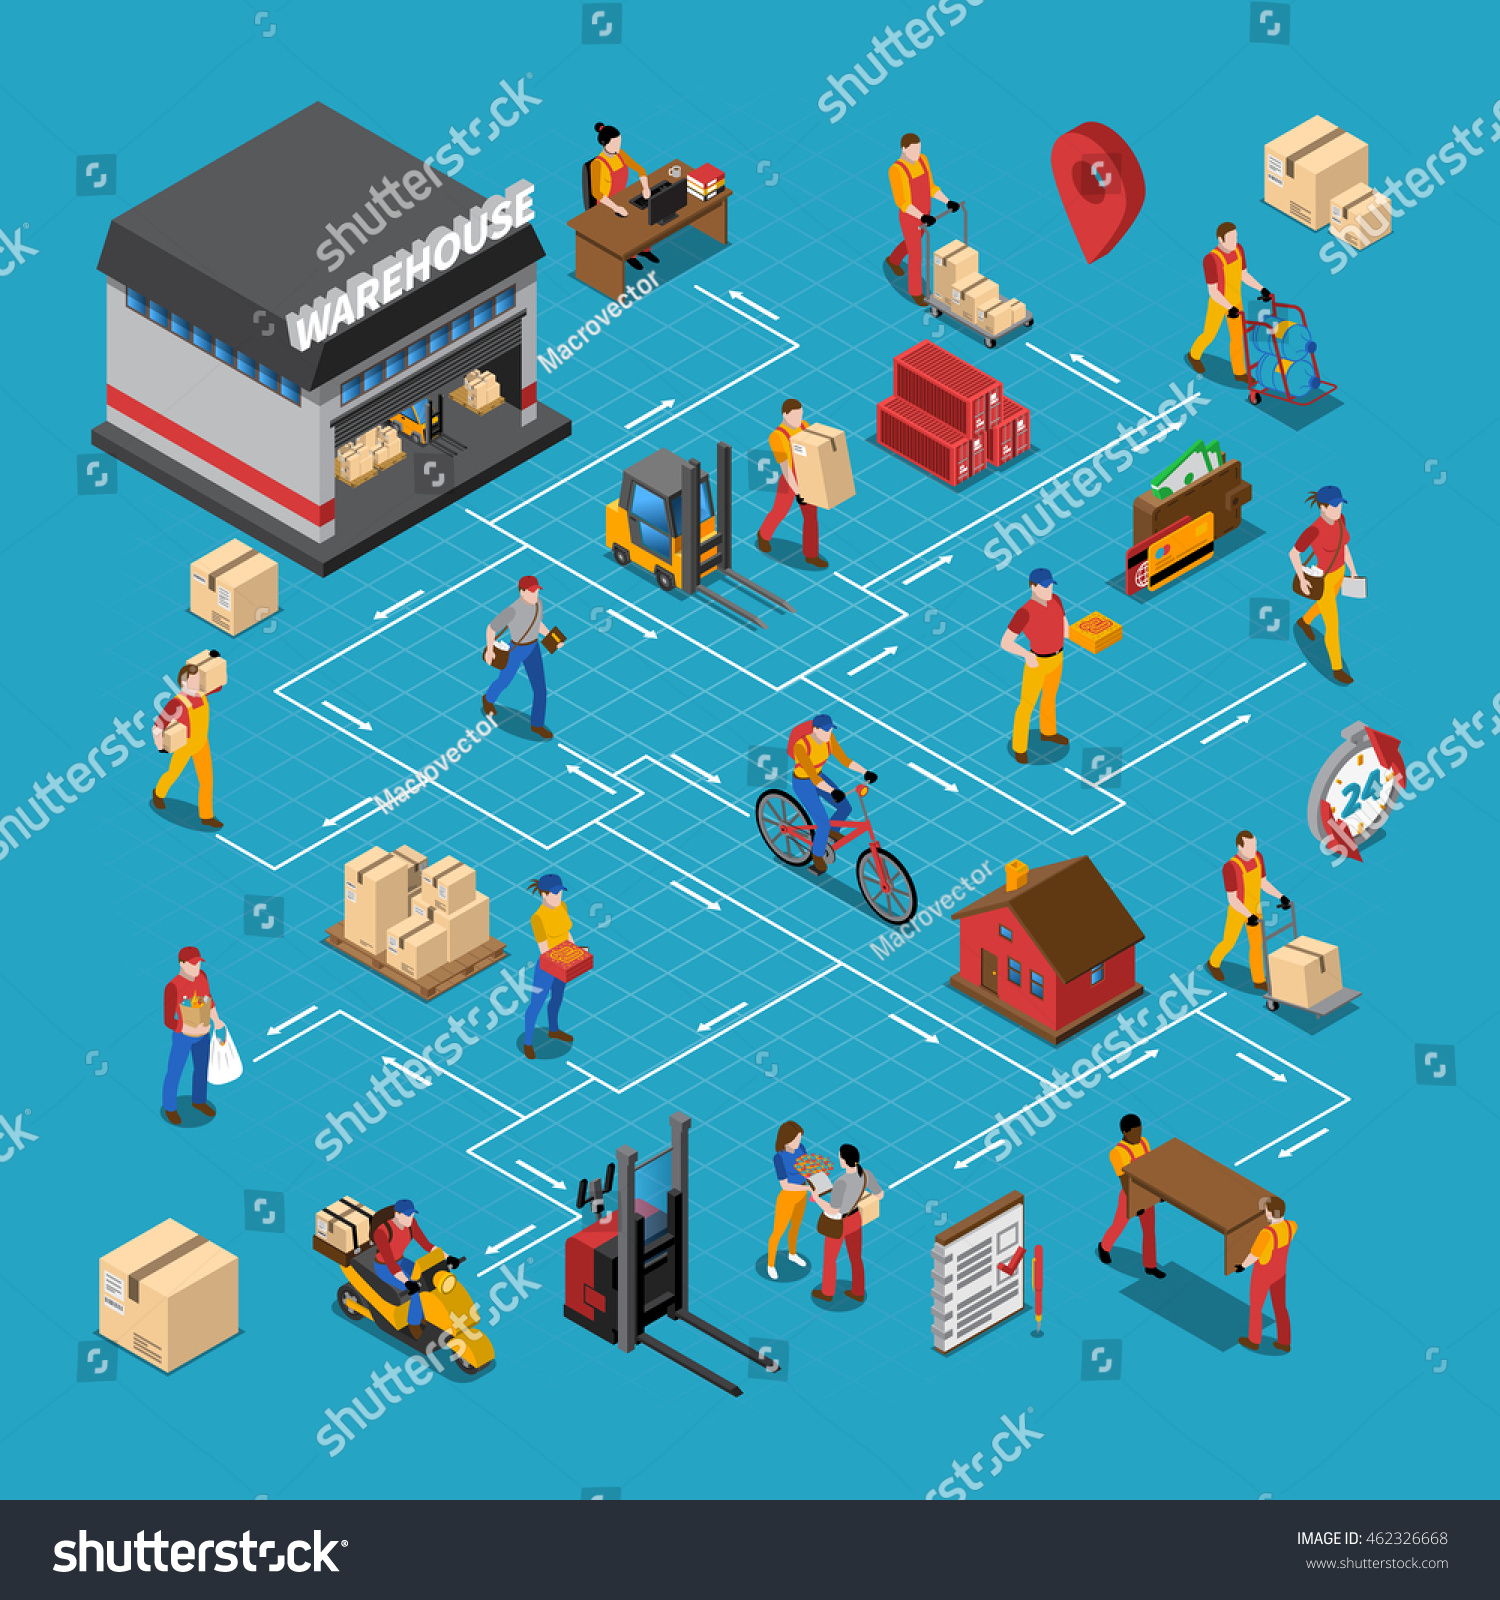 Warehouse People Isometric Flowchart Logistics Delivery Stock Vector ...